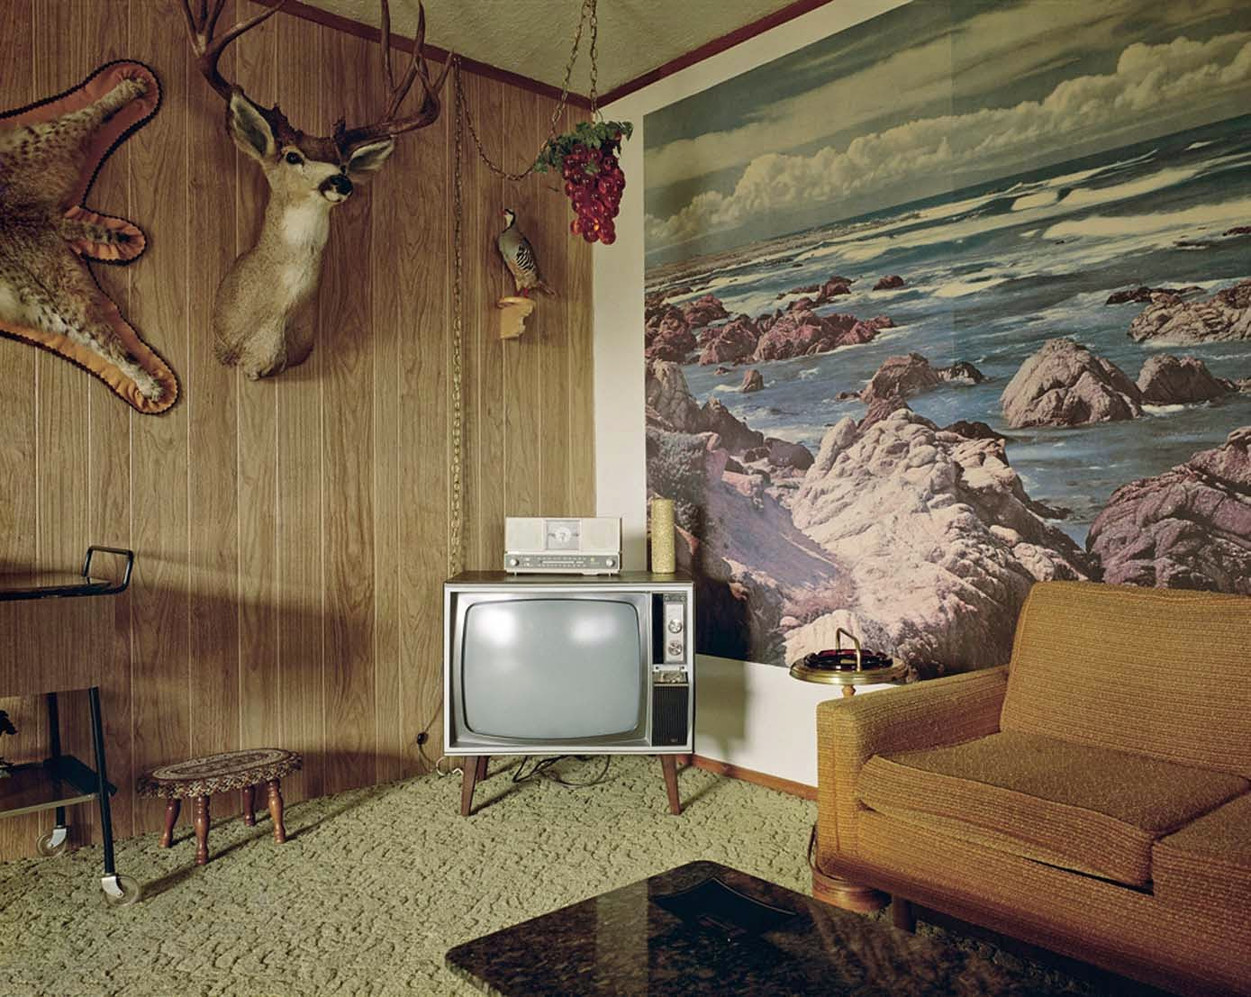 Stephen Shore - Objetos Cotidianos